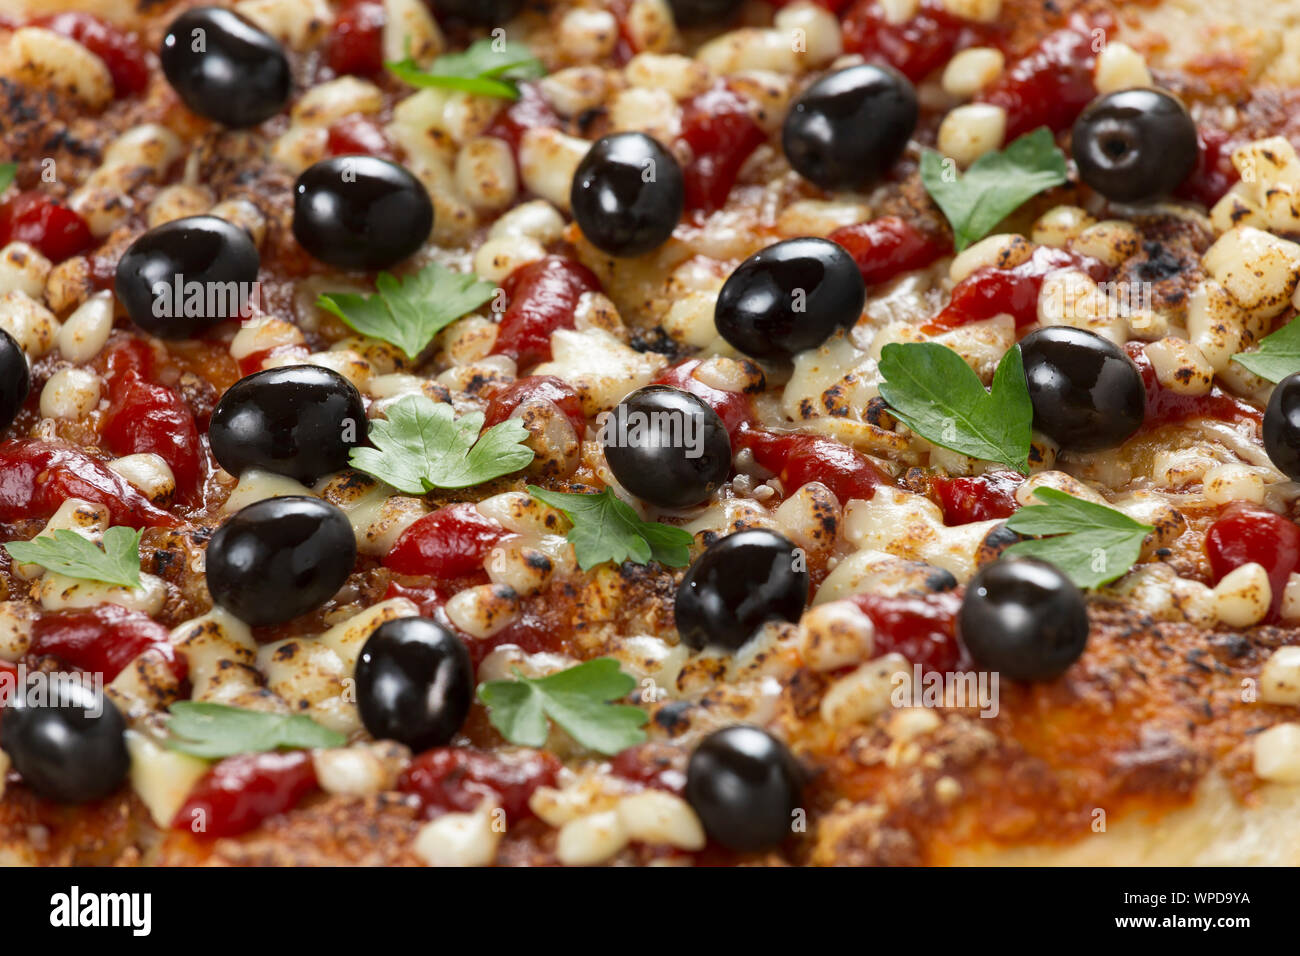 salami olives, wooden tray, alamy, served, ham cheese pizza, delicious pizza, olive oil, black olives, mozzarella cheese Stock Photo